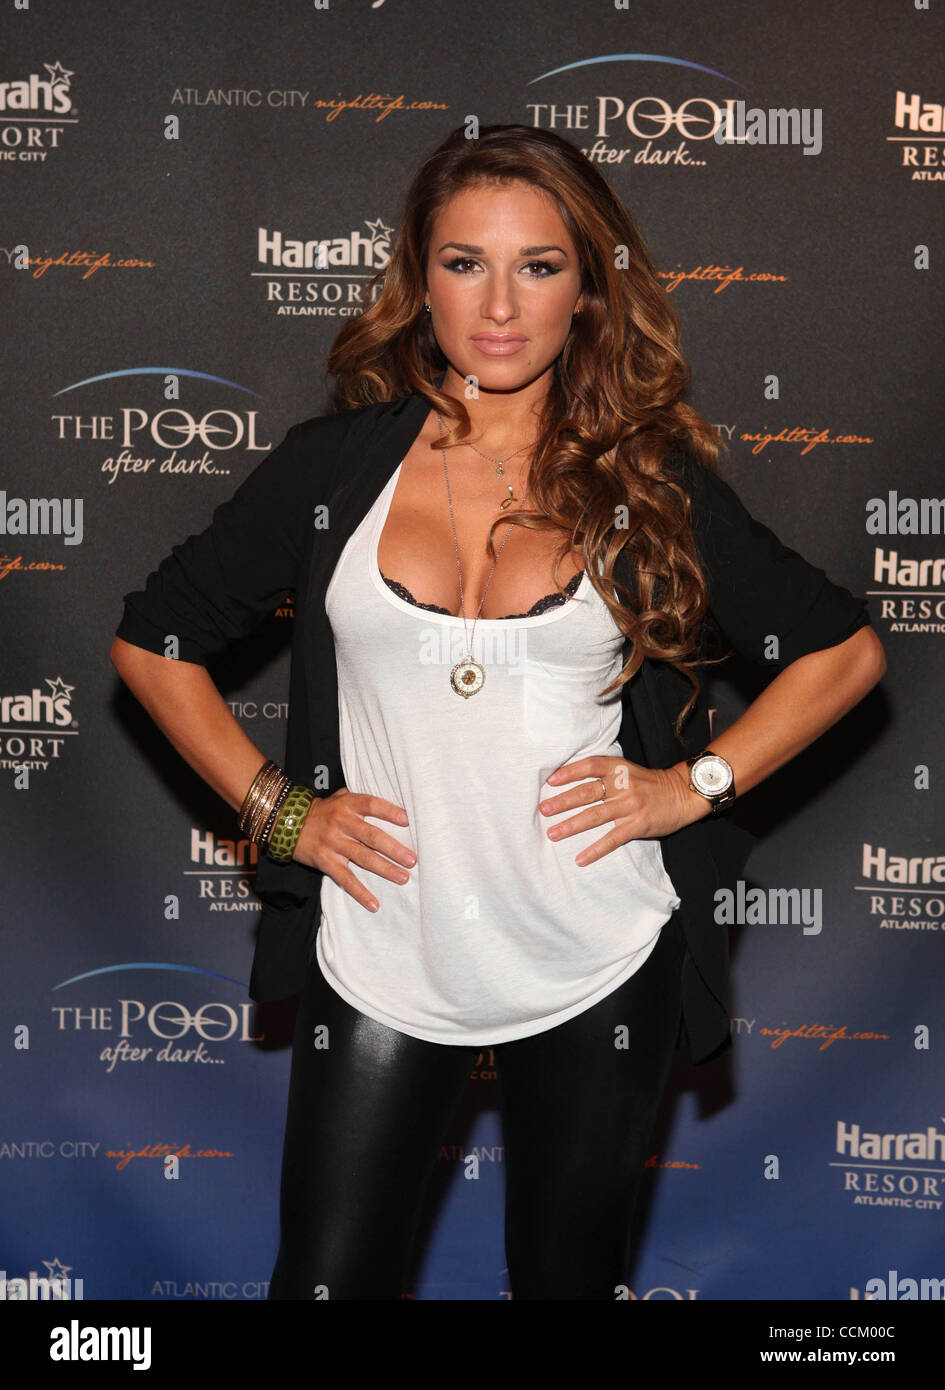 f20e87877fb Nov 12, 2010 - Atlantic City, New Jersey , U.S. - Country singer JESSIE  JAMES poses at the step & repeat before her visit to The Pool After Dark at  Harrah's ...